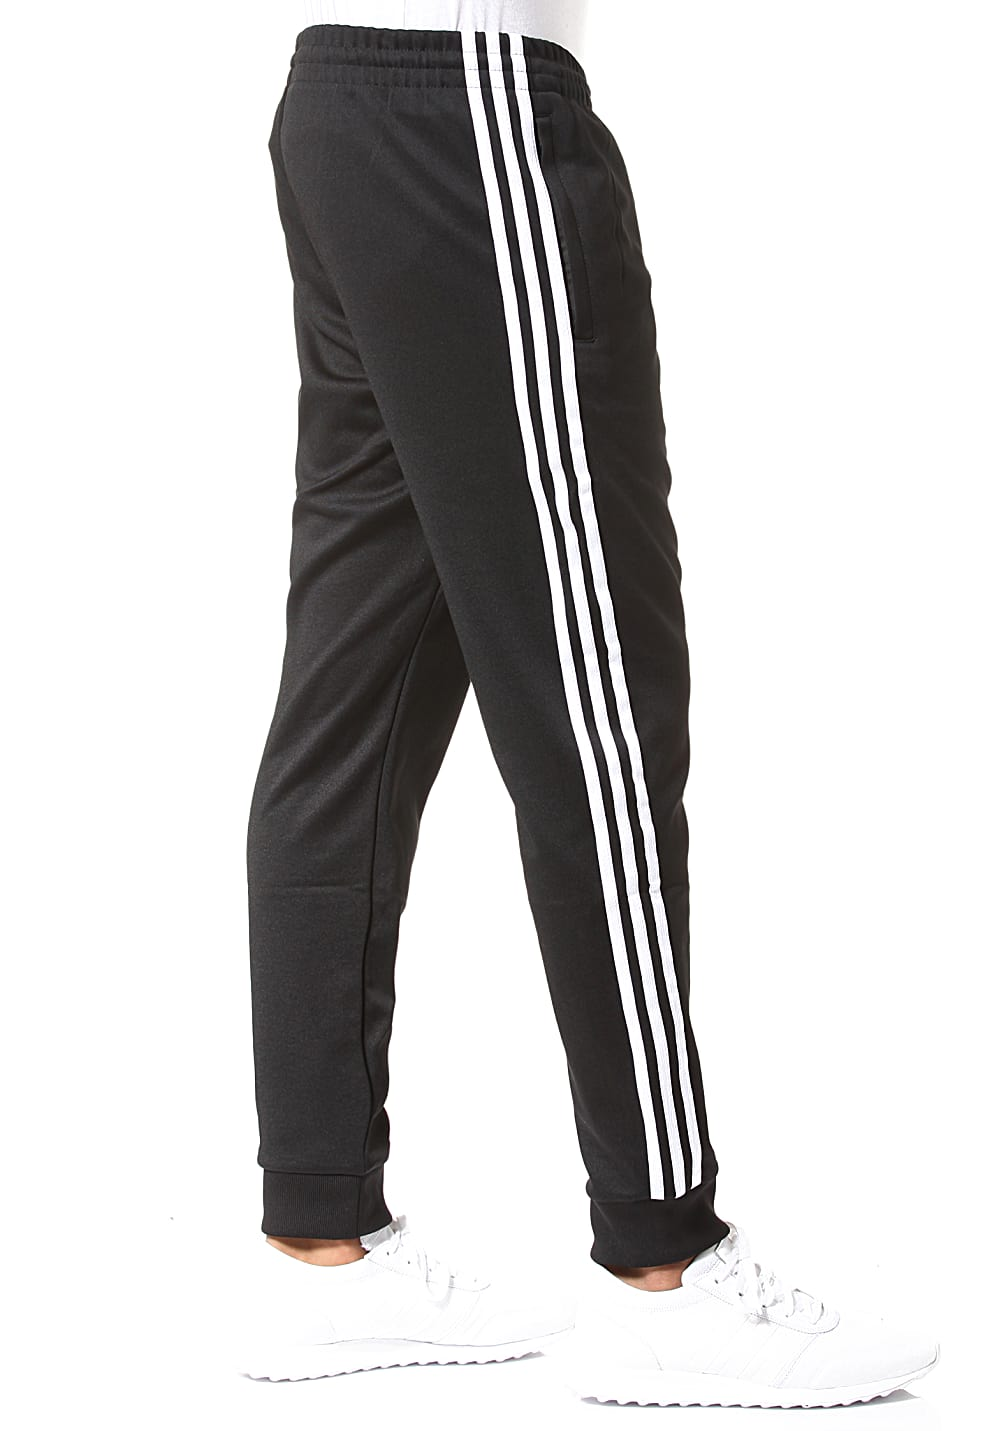 ADIDAS ORIGINALS Sst Trainingsbroek voor Heren Zwart